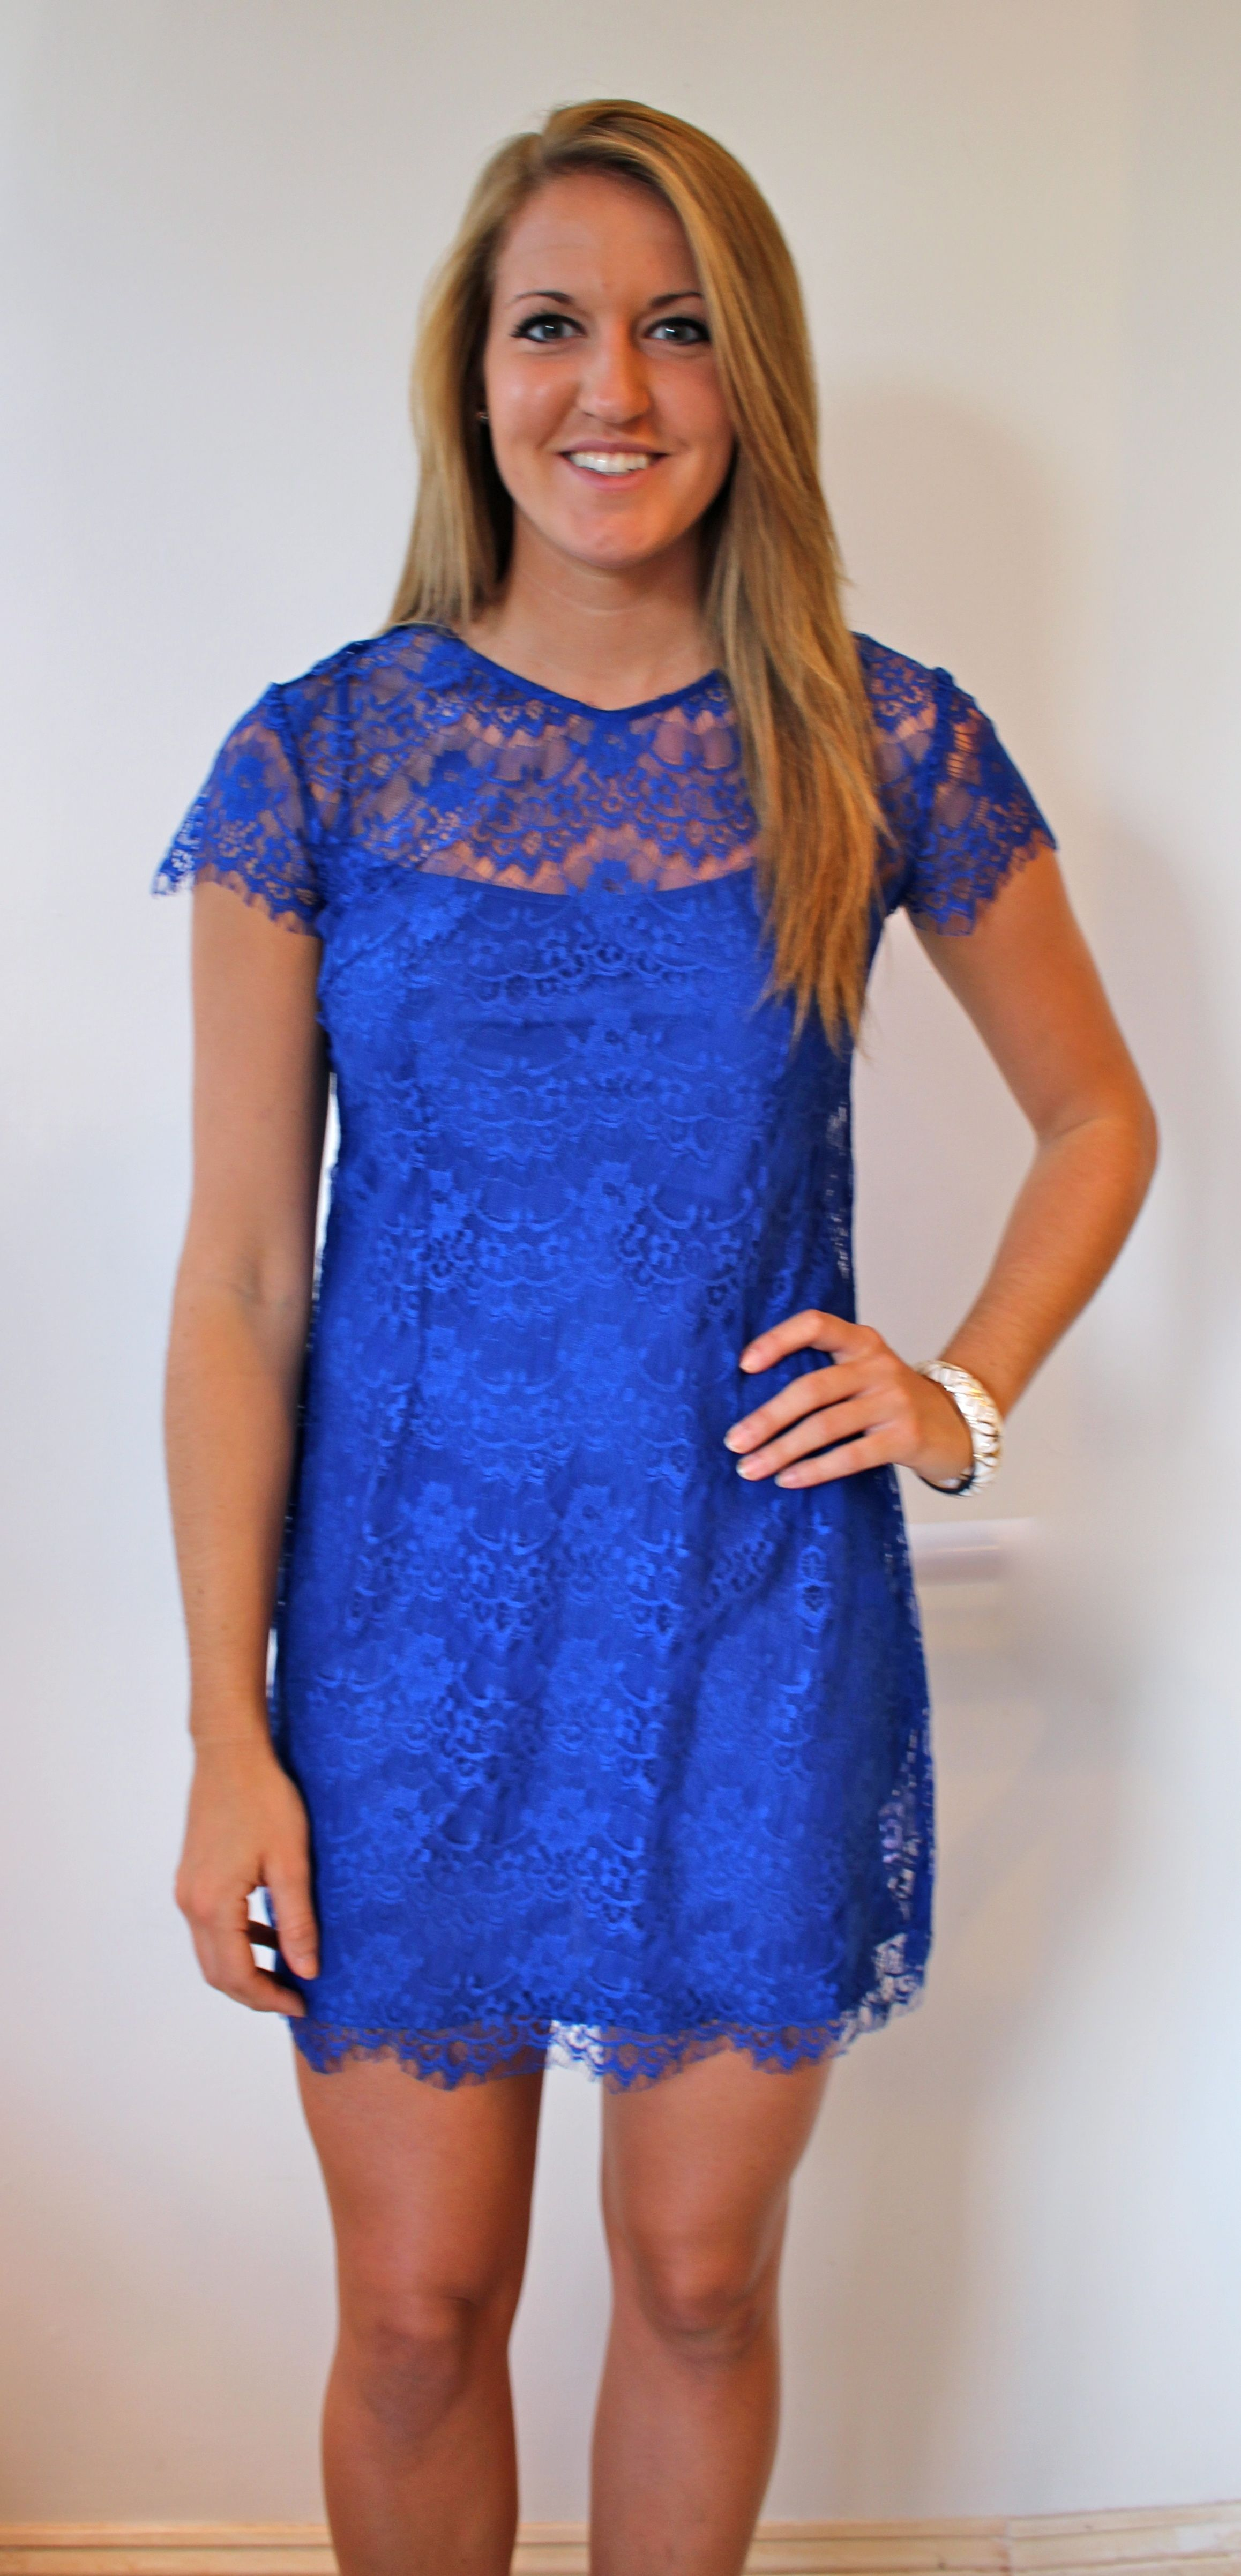 Cobalt blue lace dress perfect for late summer early fall events!